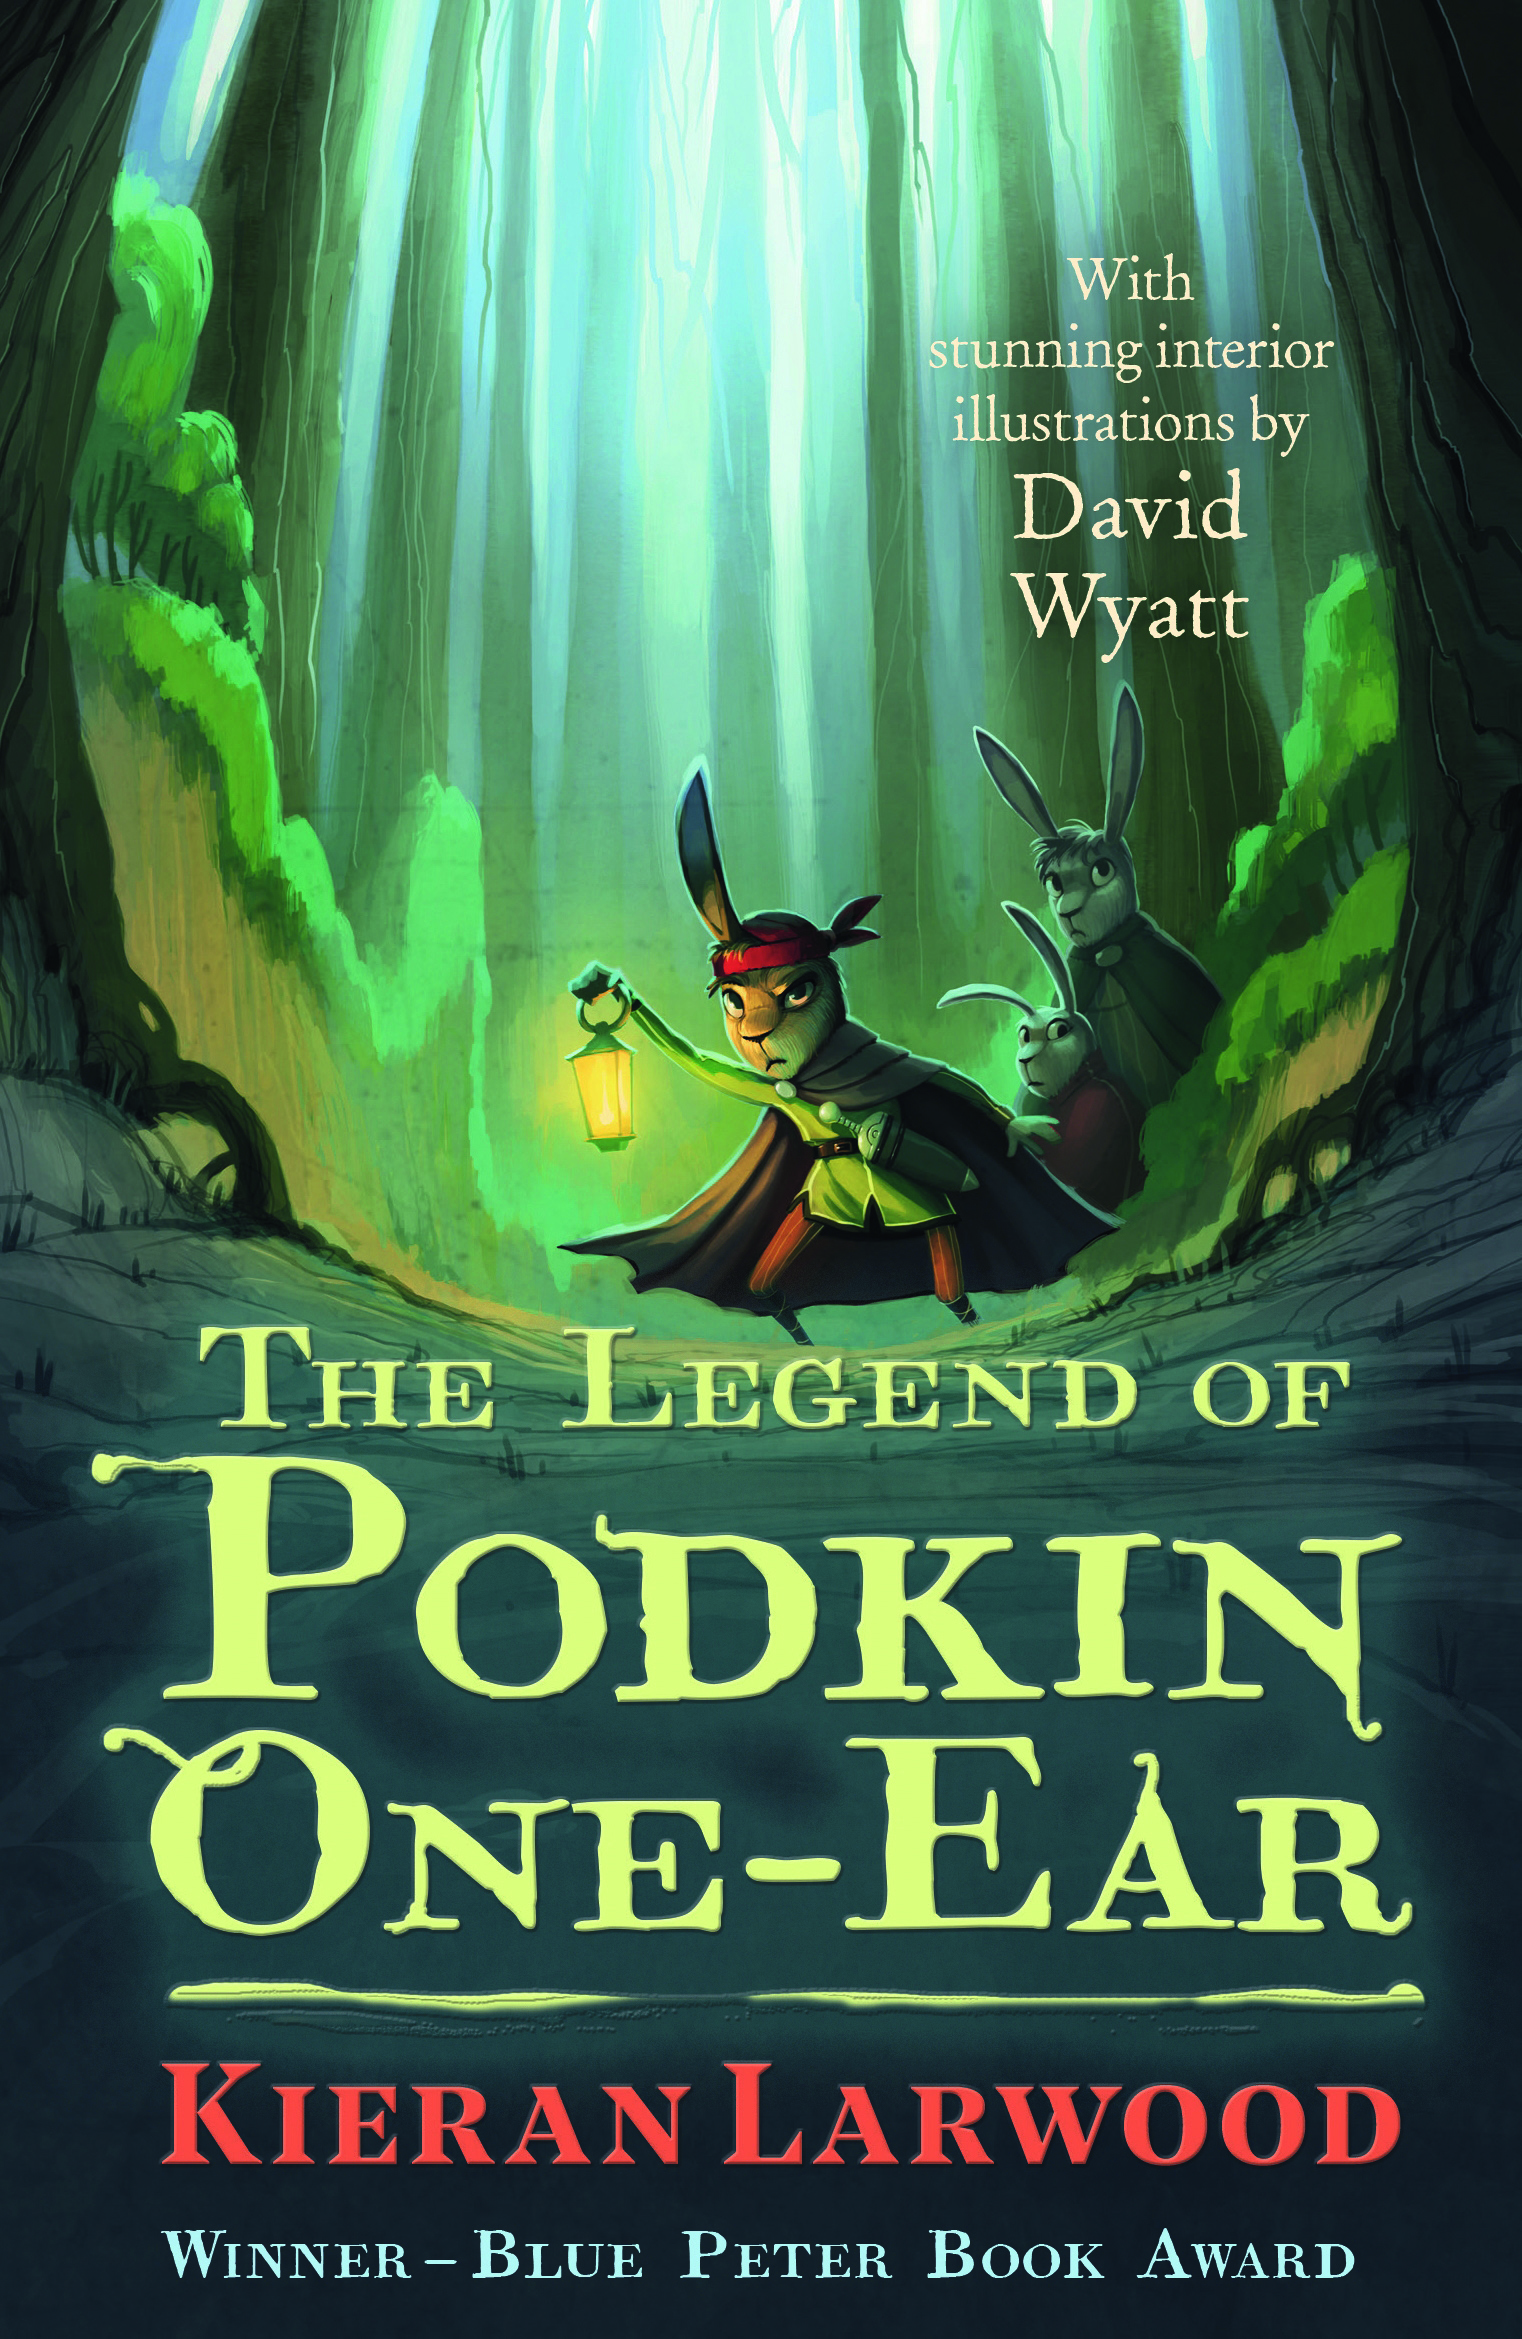 The Legend of Podkin One Ear